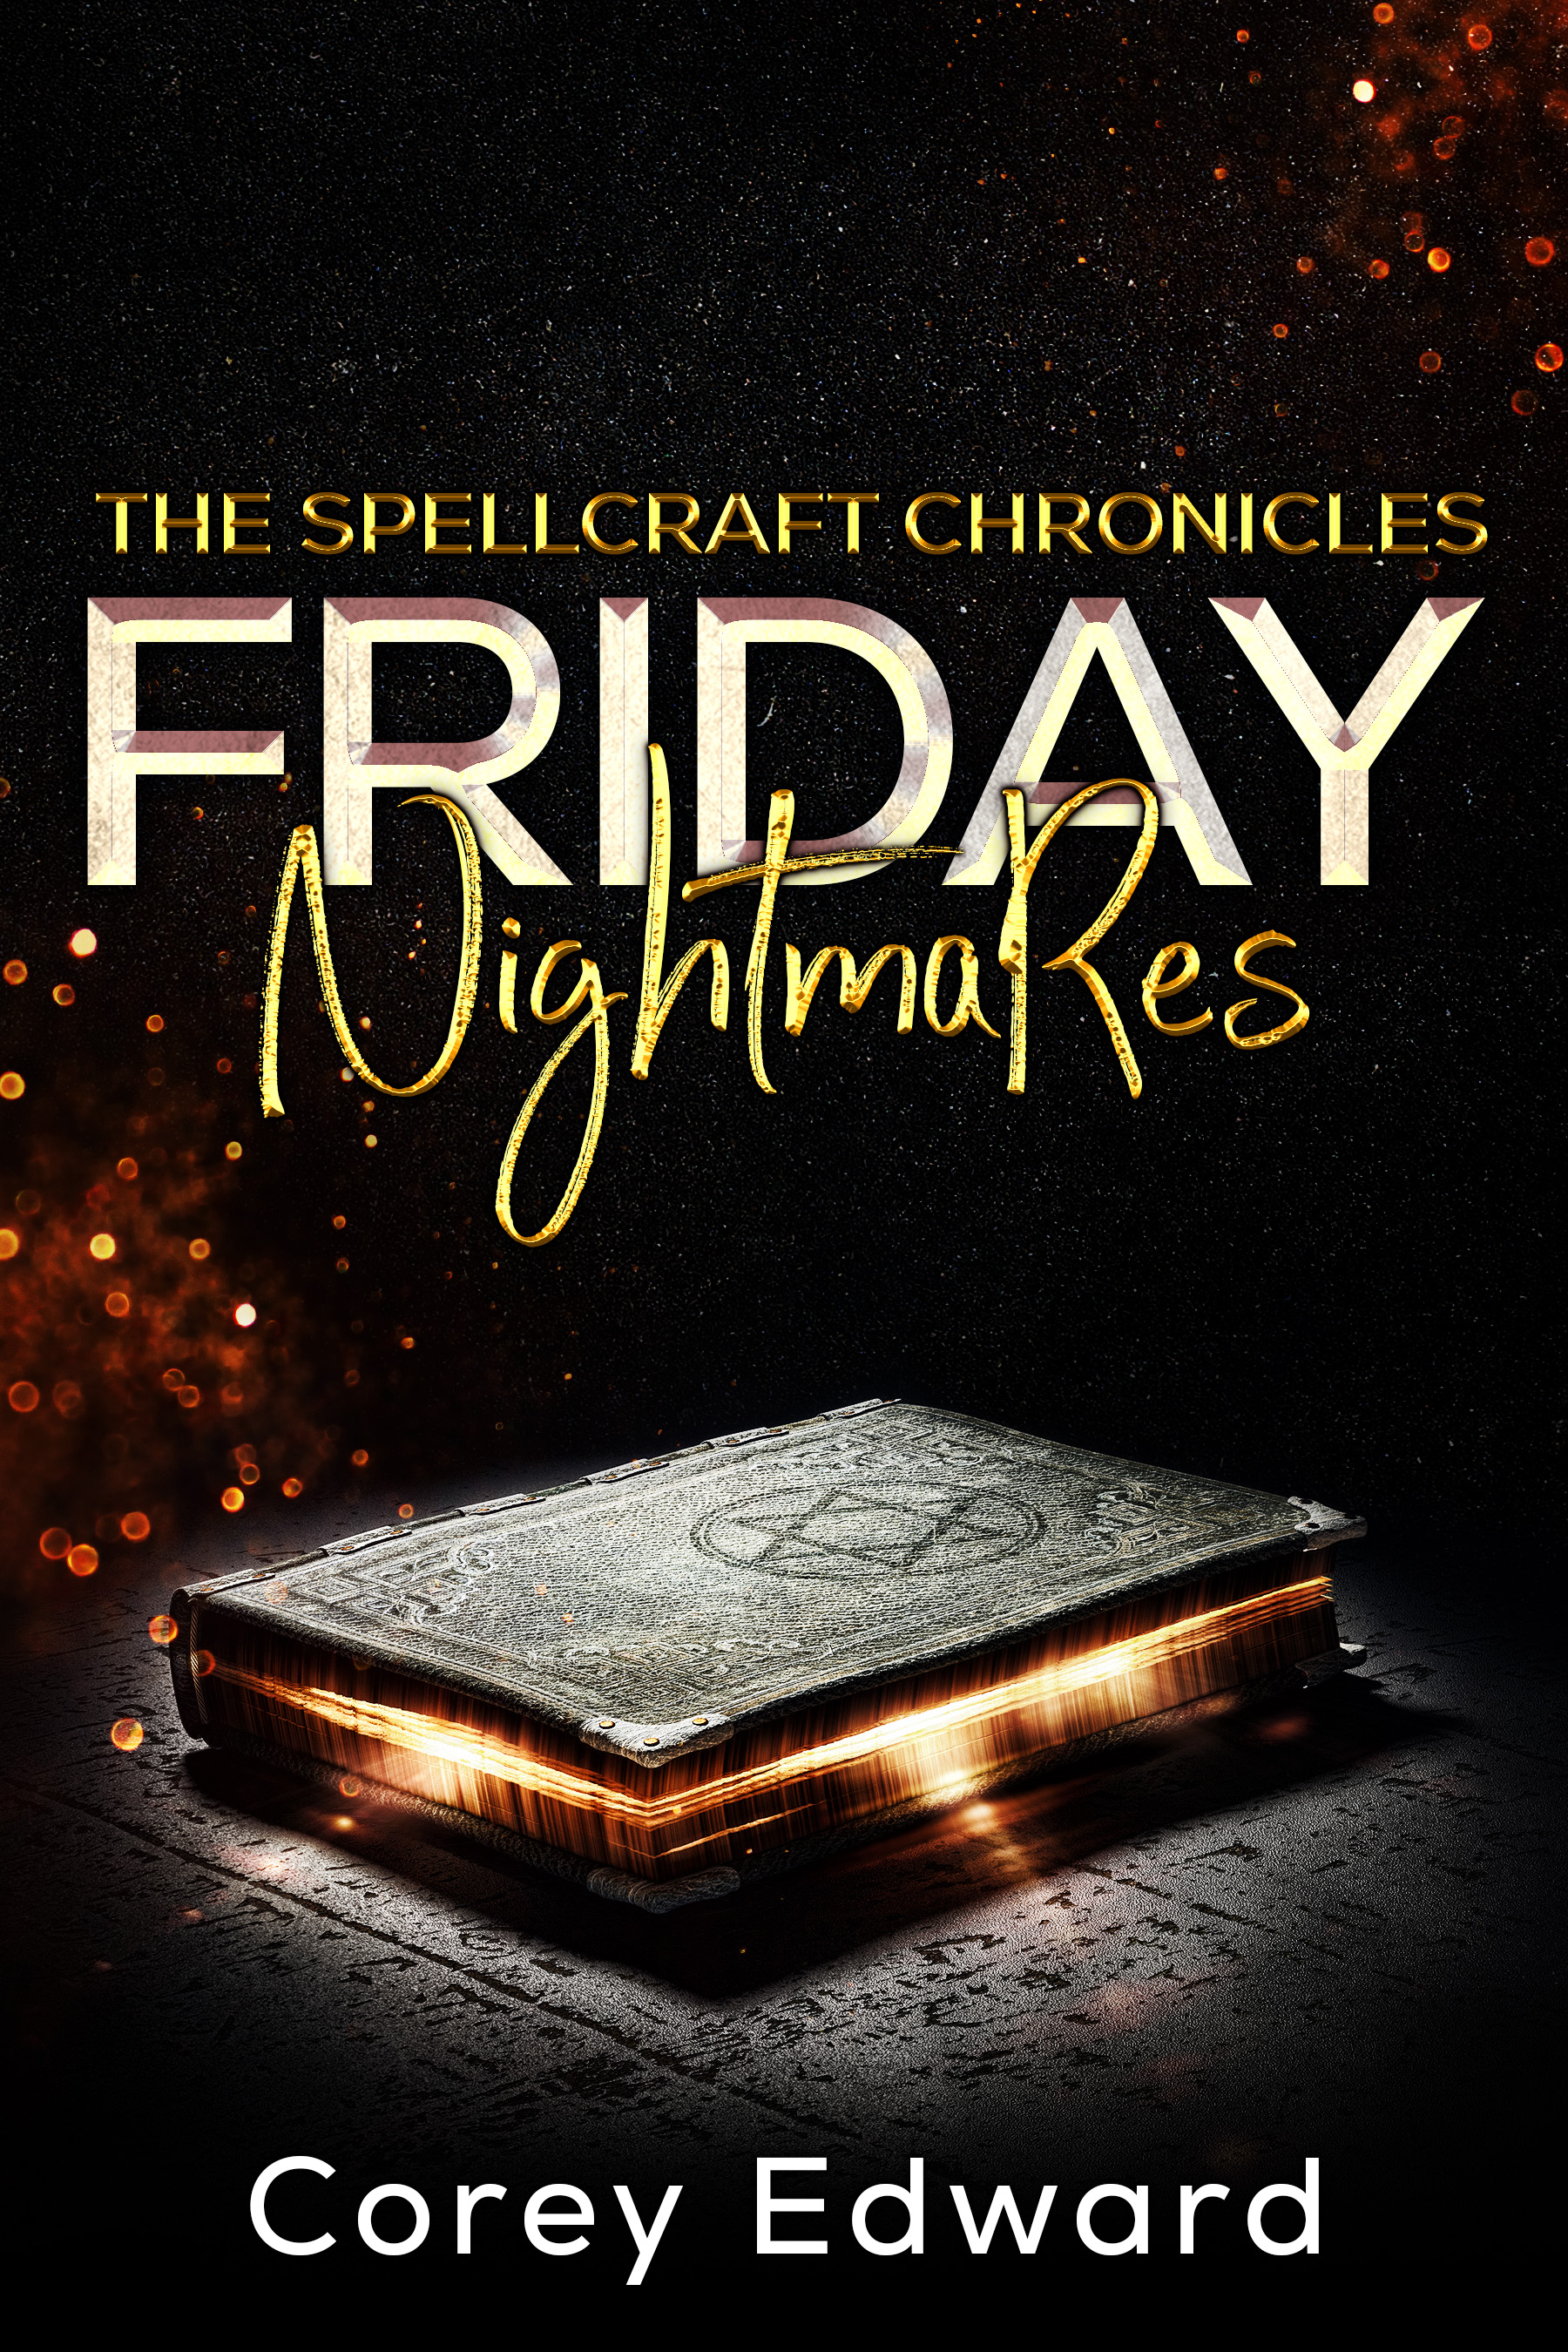 Friday Nightmares cover